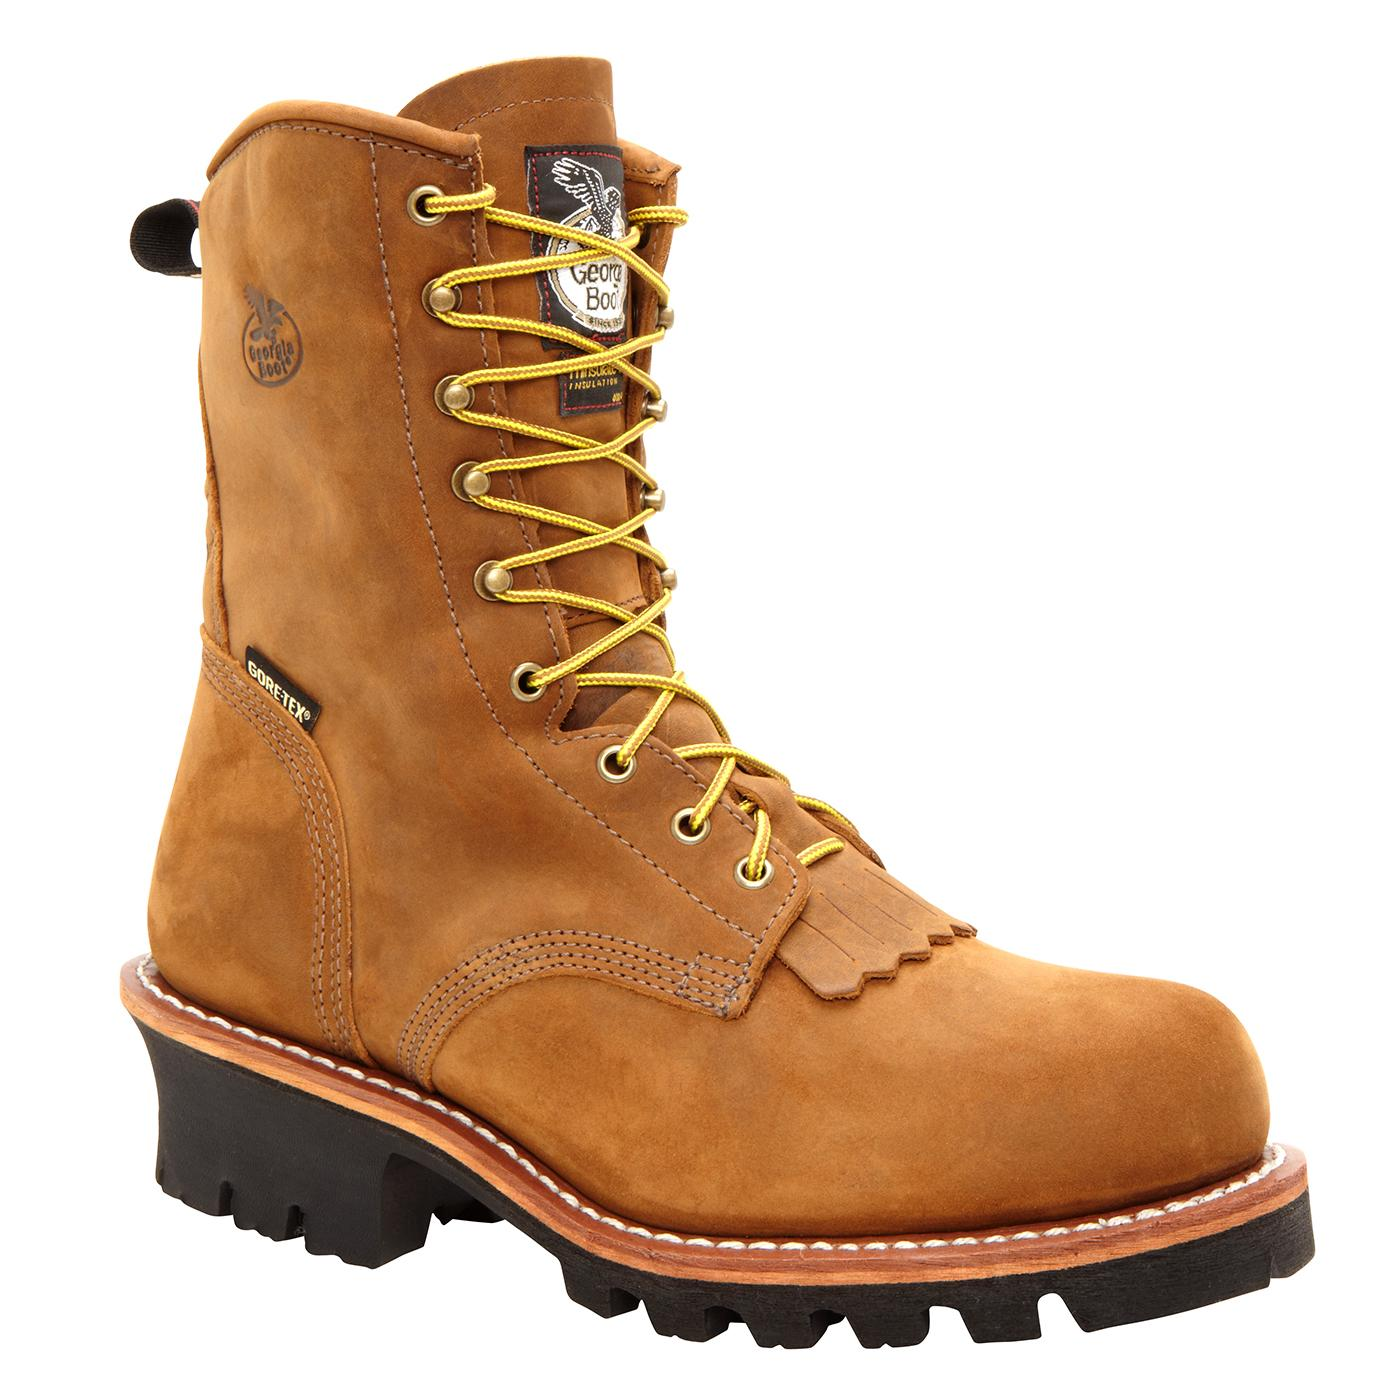 d3e407c1231 Georgia GORE-TEX® Waterproof Insulated Logger Work Boots